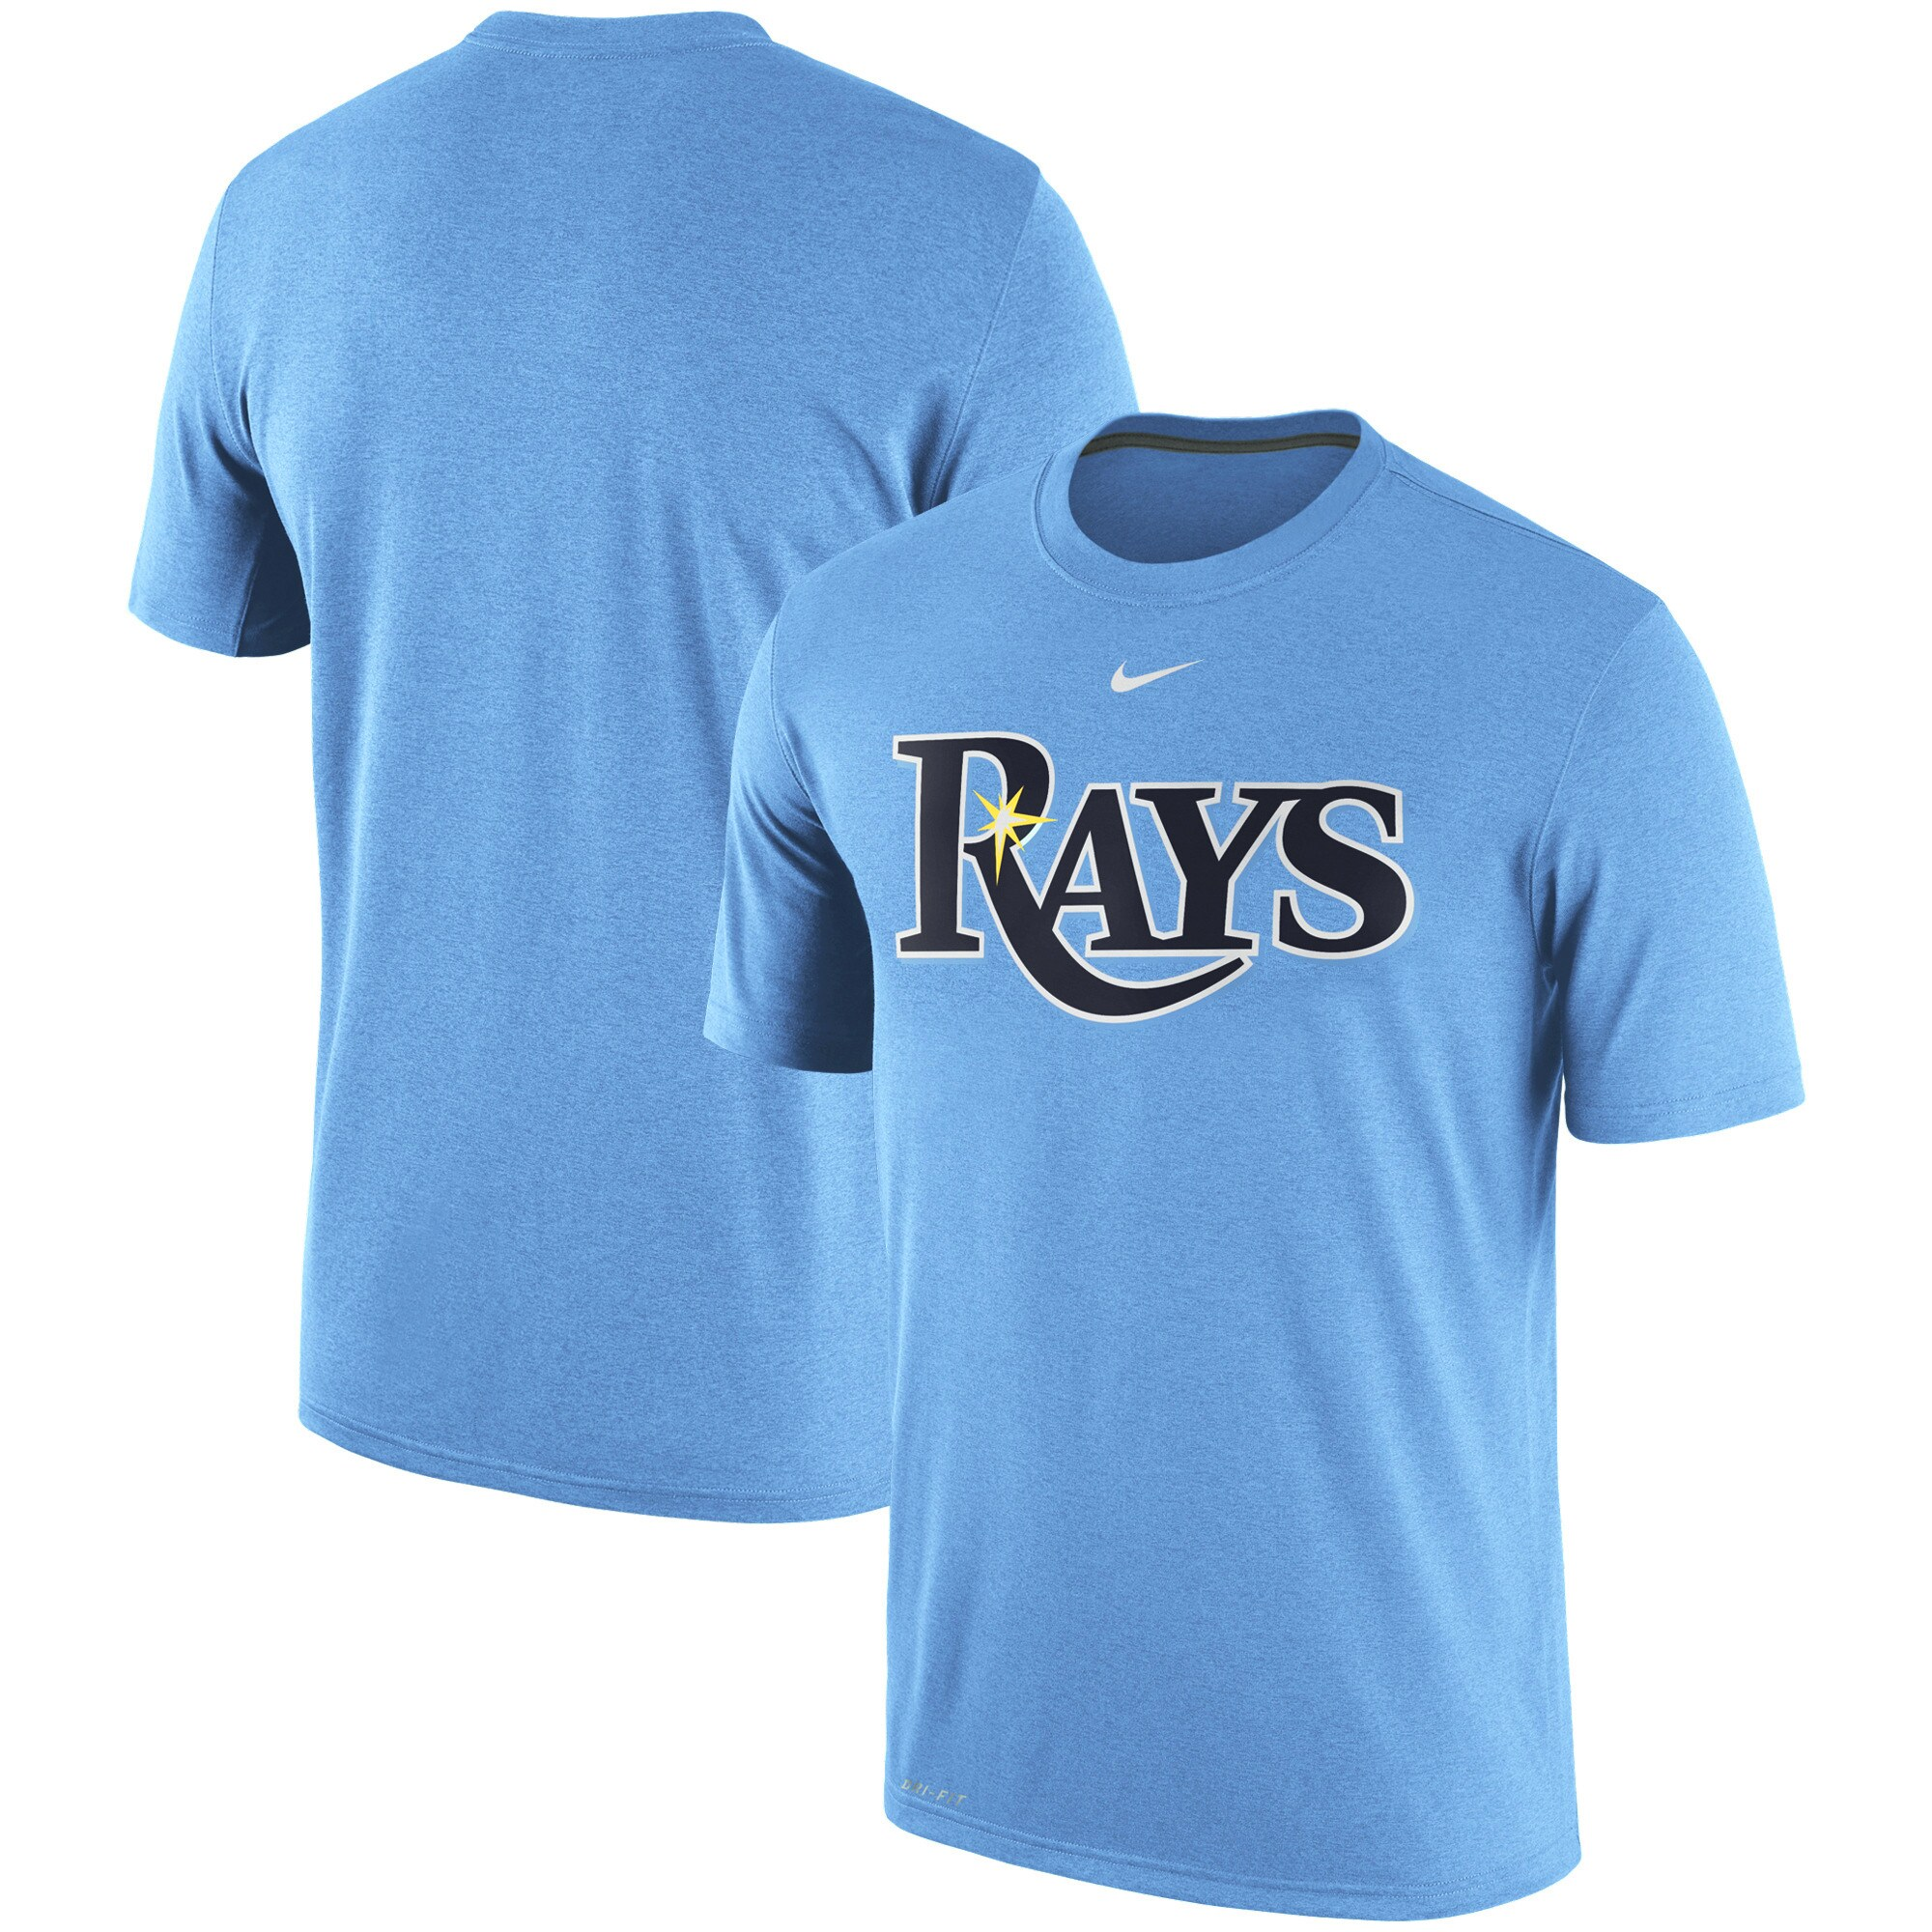 Tampa Bay Rays Nike Legend Primary Logo Performance T-Shirt - Blue